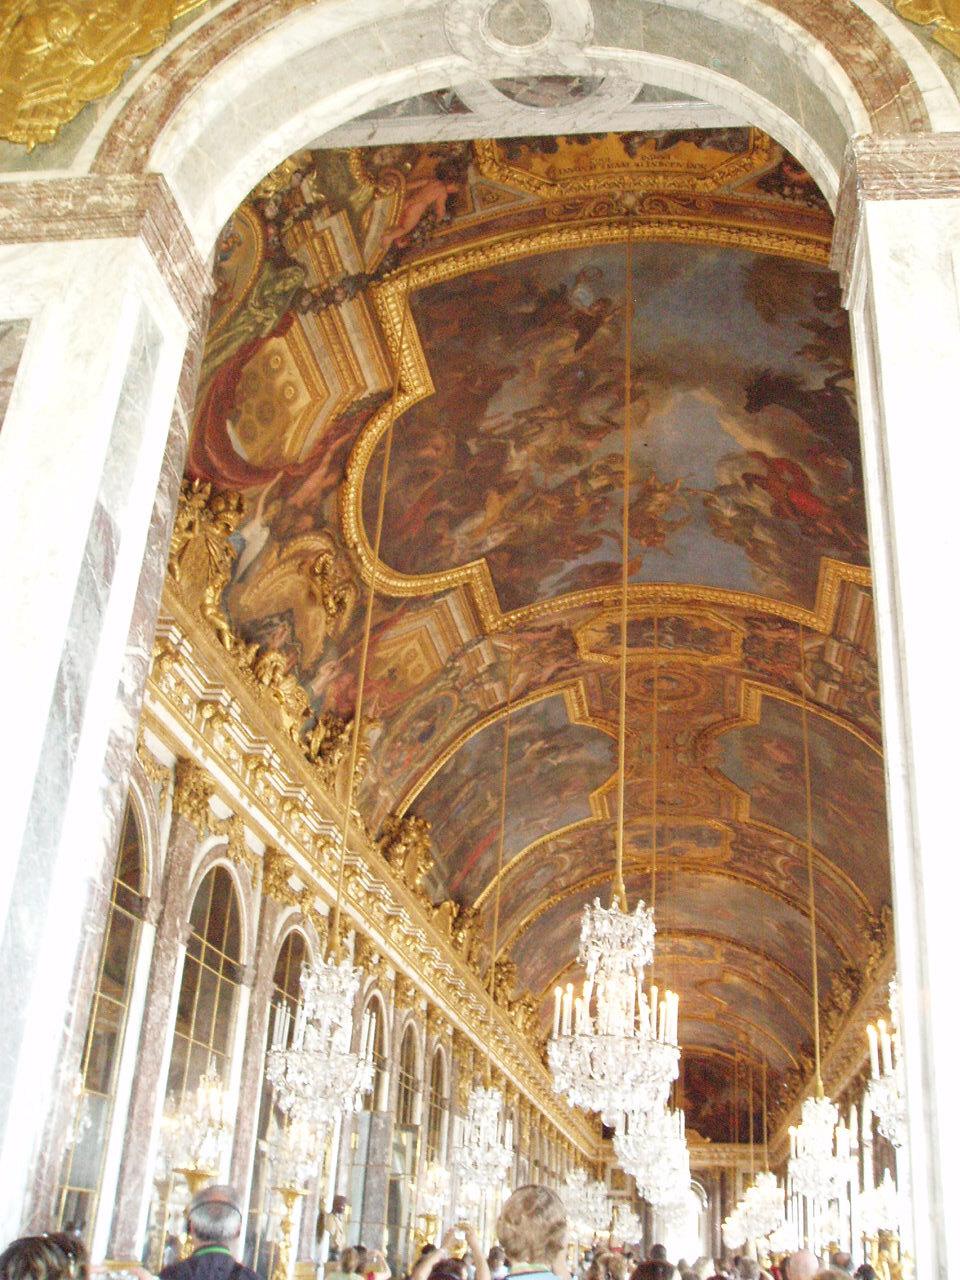 The hall of mirrors inside the Palace of  Versailles